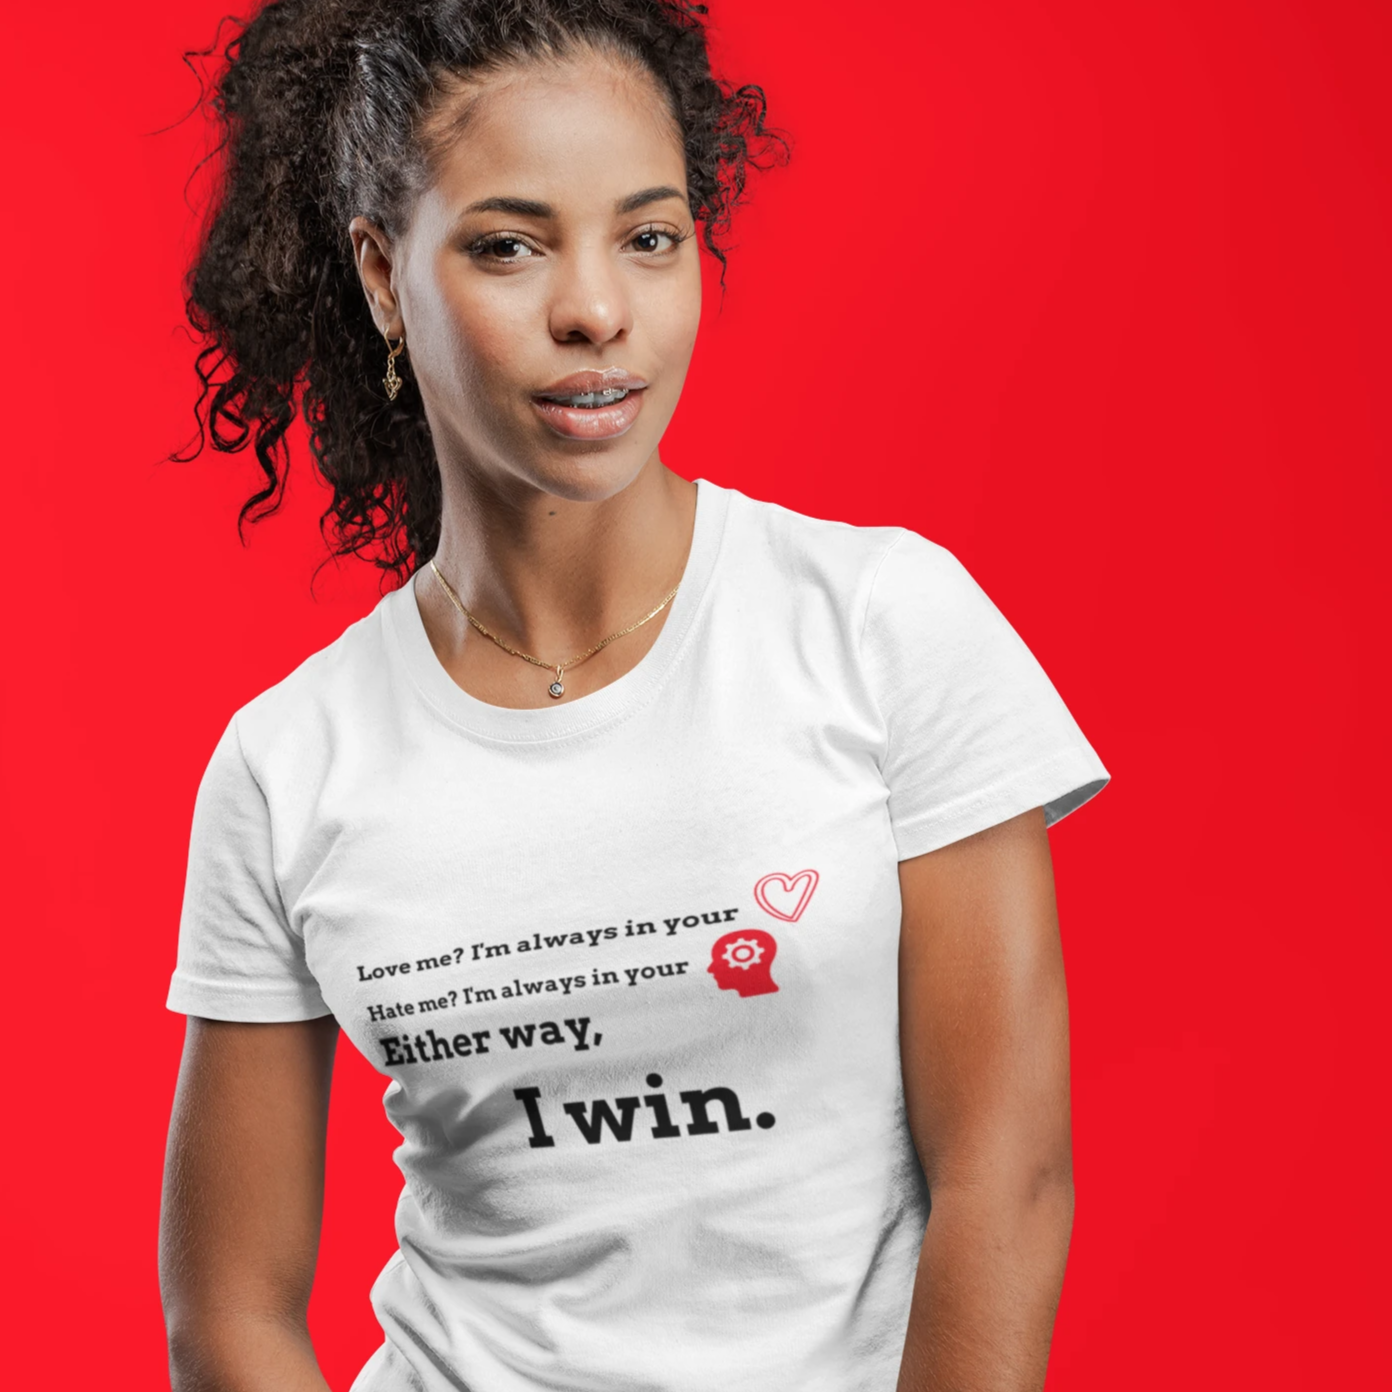 Love Me Or Hate Me, I Win - Womens Fairtrade Tee